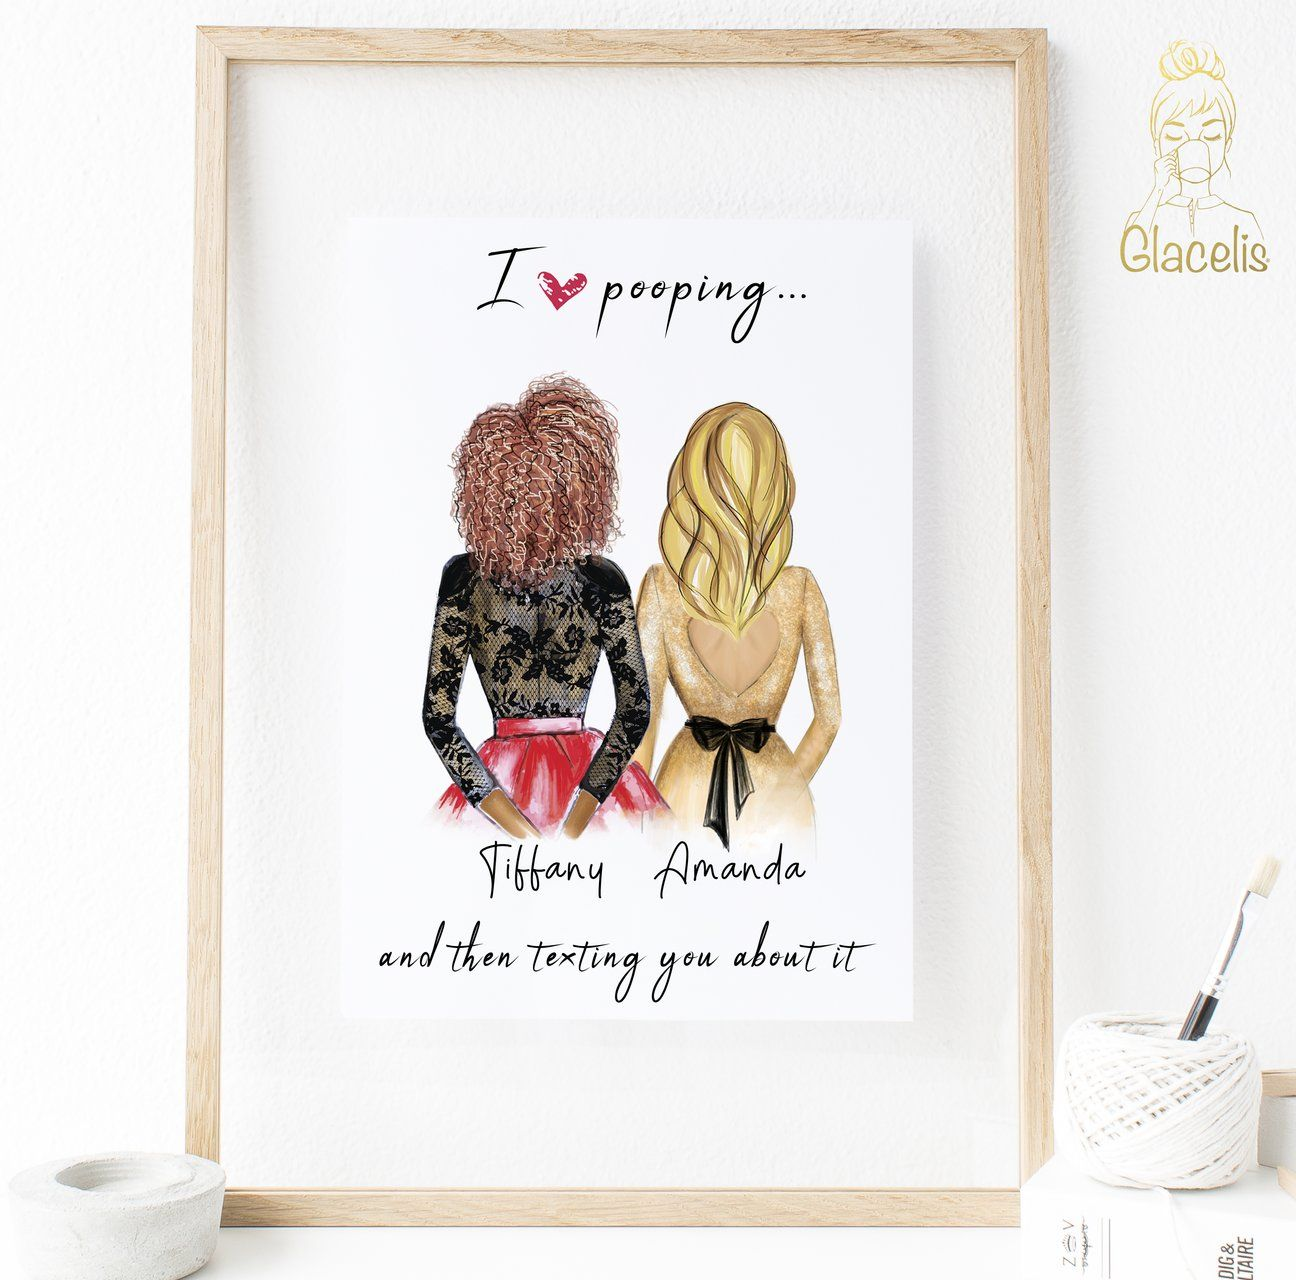 Personalized Best Friend Wall Art I Love Pooping And Then Texting You About It Best Friend Frames My Best Friend S Birthday Sentimental Gifts